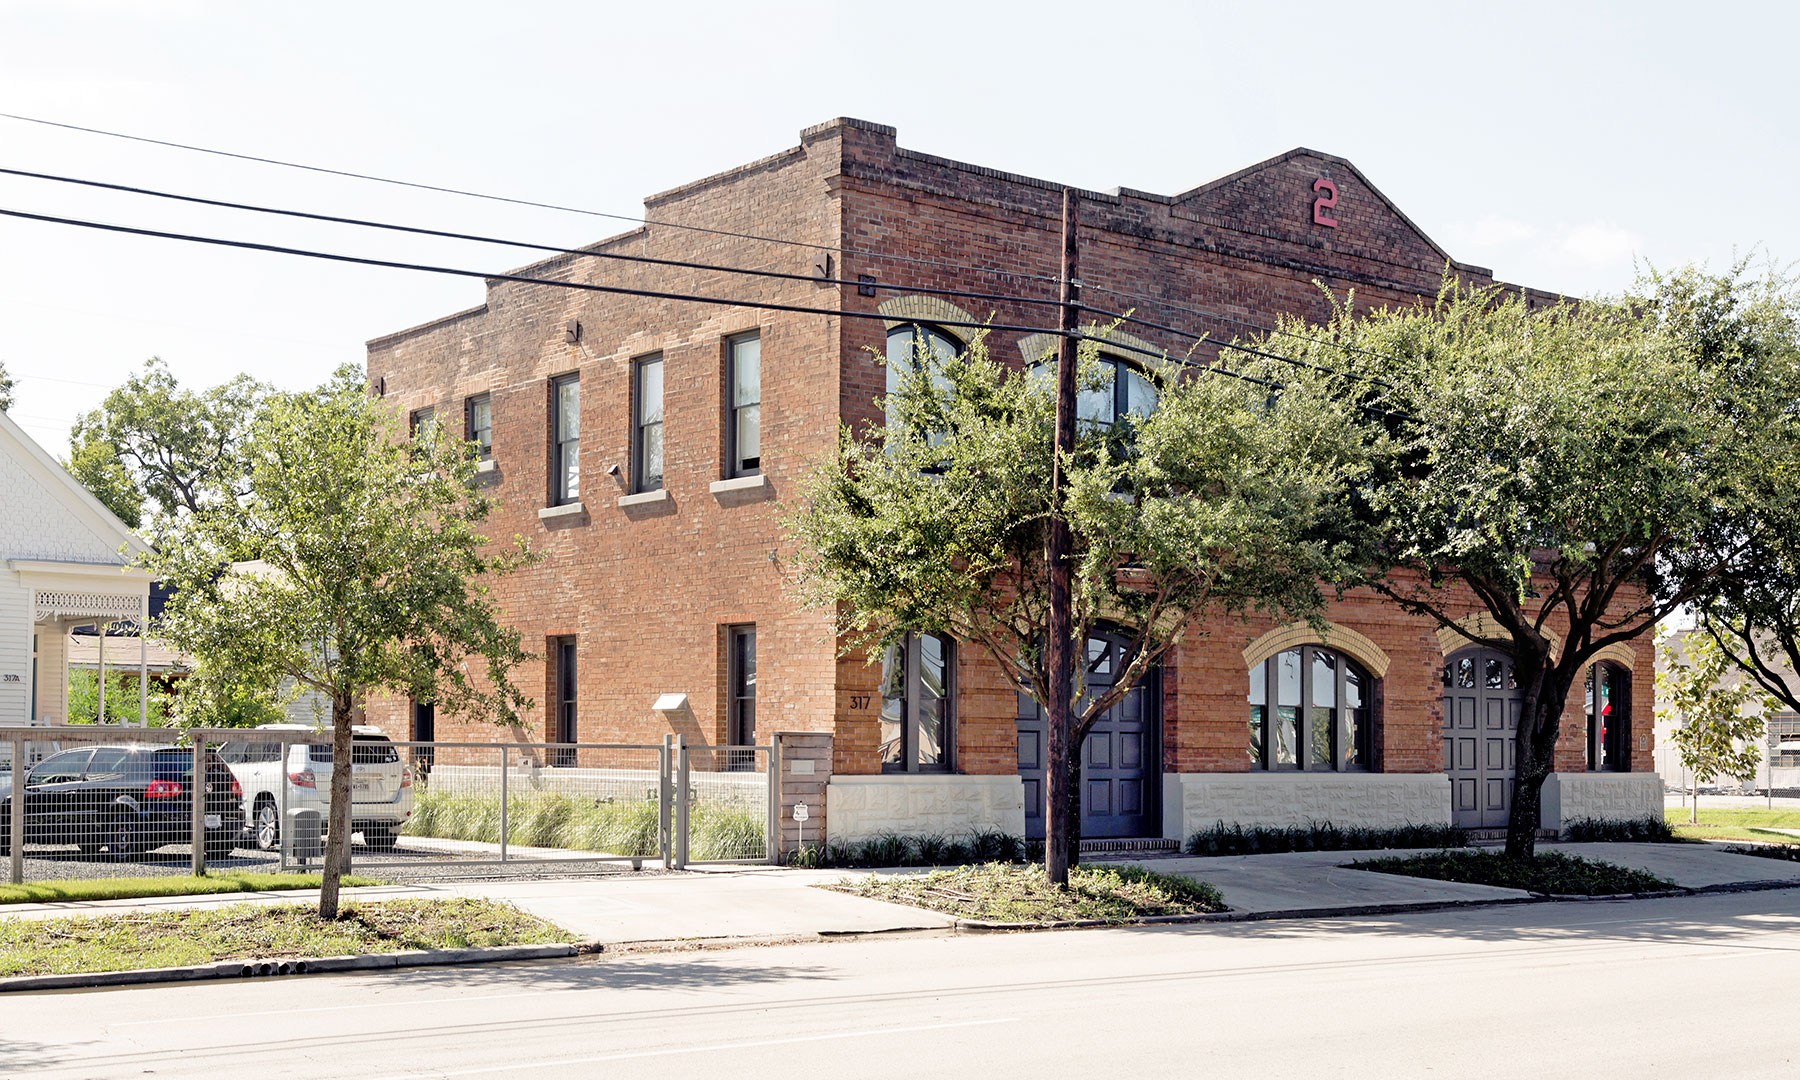 Anne Whitlock & Michael Skelly for the rehabilitation and adaptive re-use of Fire Station No. 2 (1910) in the East End /  photo by Jack Thompson